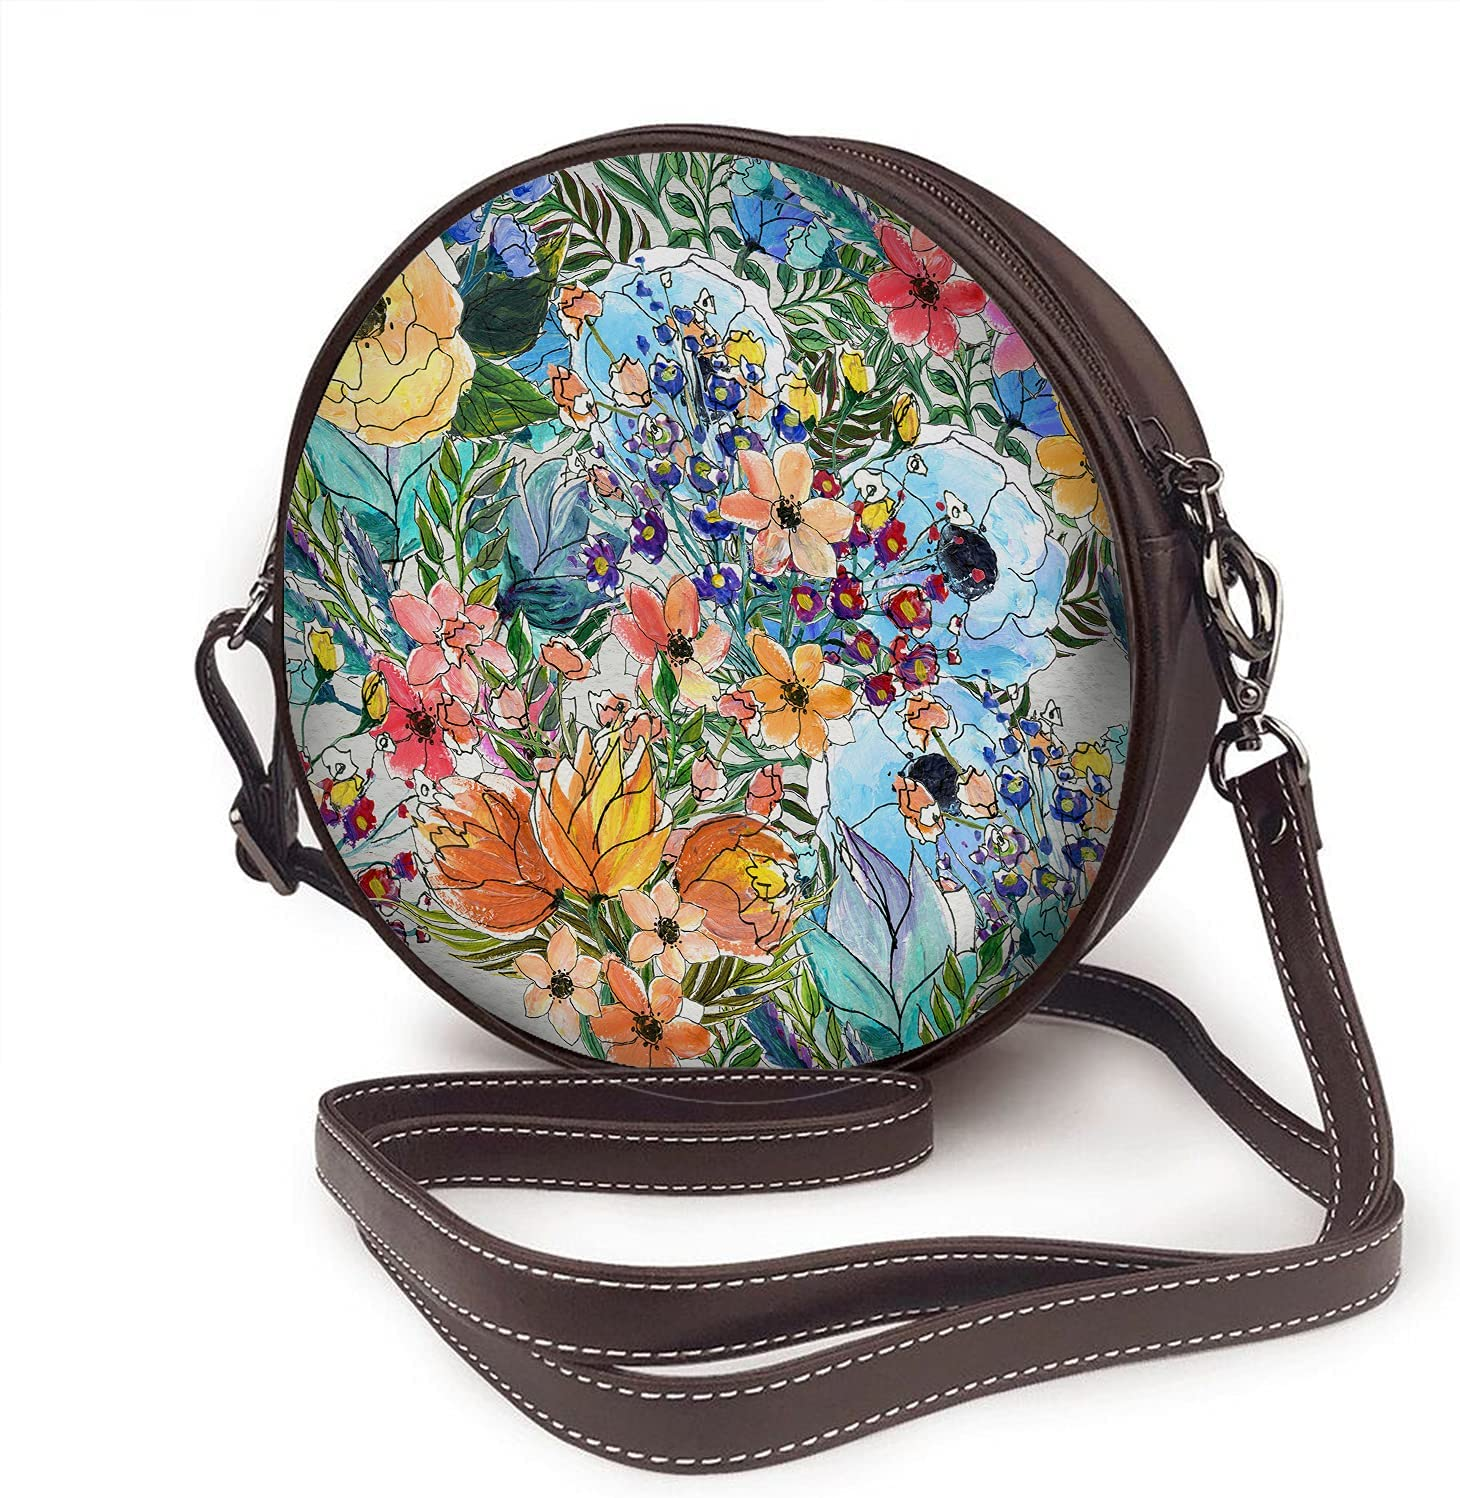 WONDERTIFY Max 42% OFF Flowers Shoulder Bags Watercolor Blossom 4 years warranty Pl Rose Herb